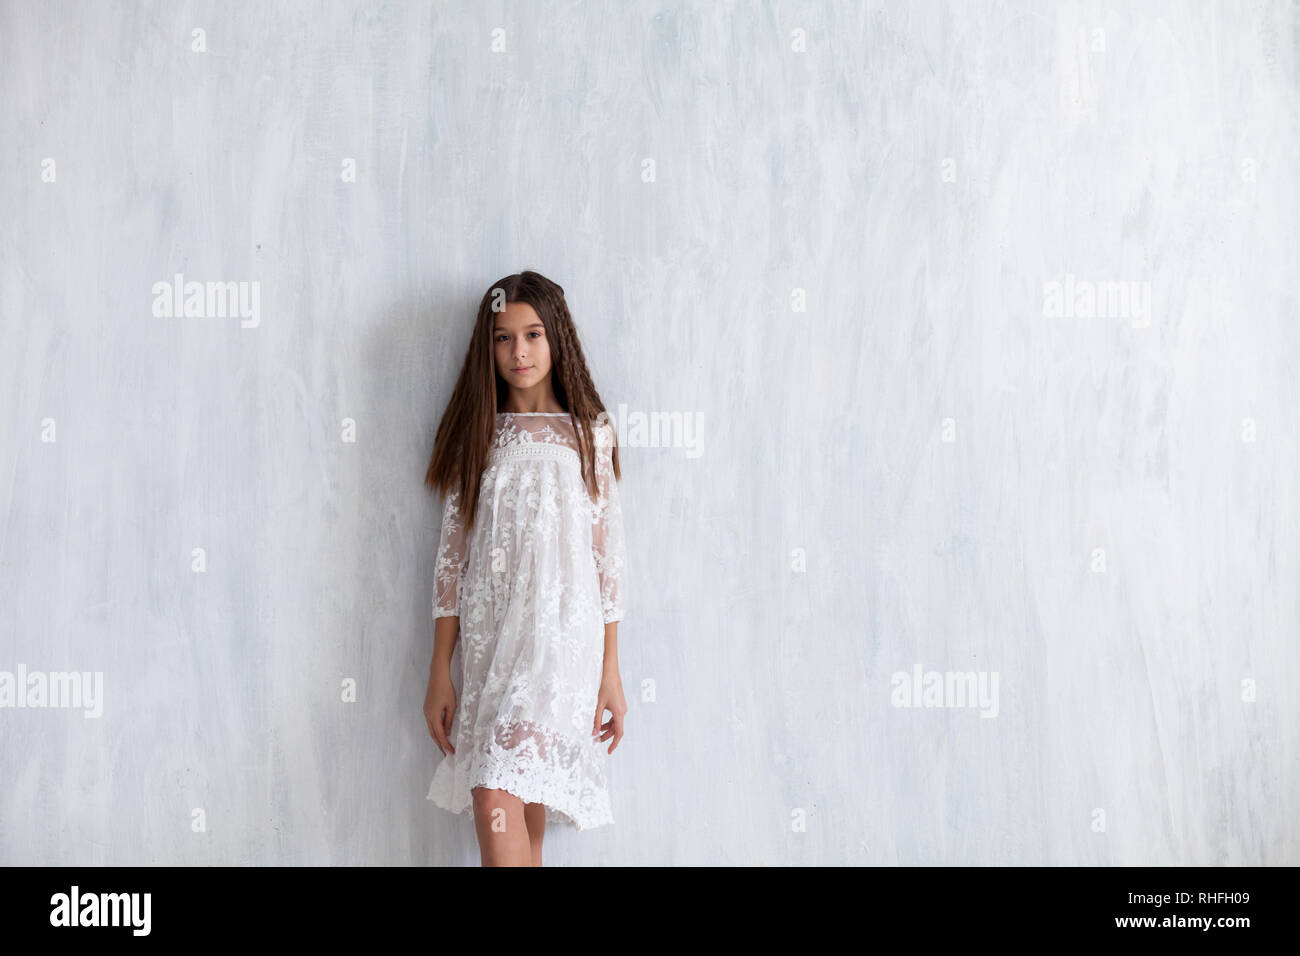 fashion girl 12 years old in a white dress - Stock Image